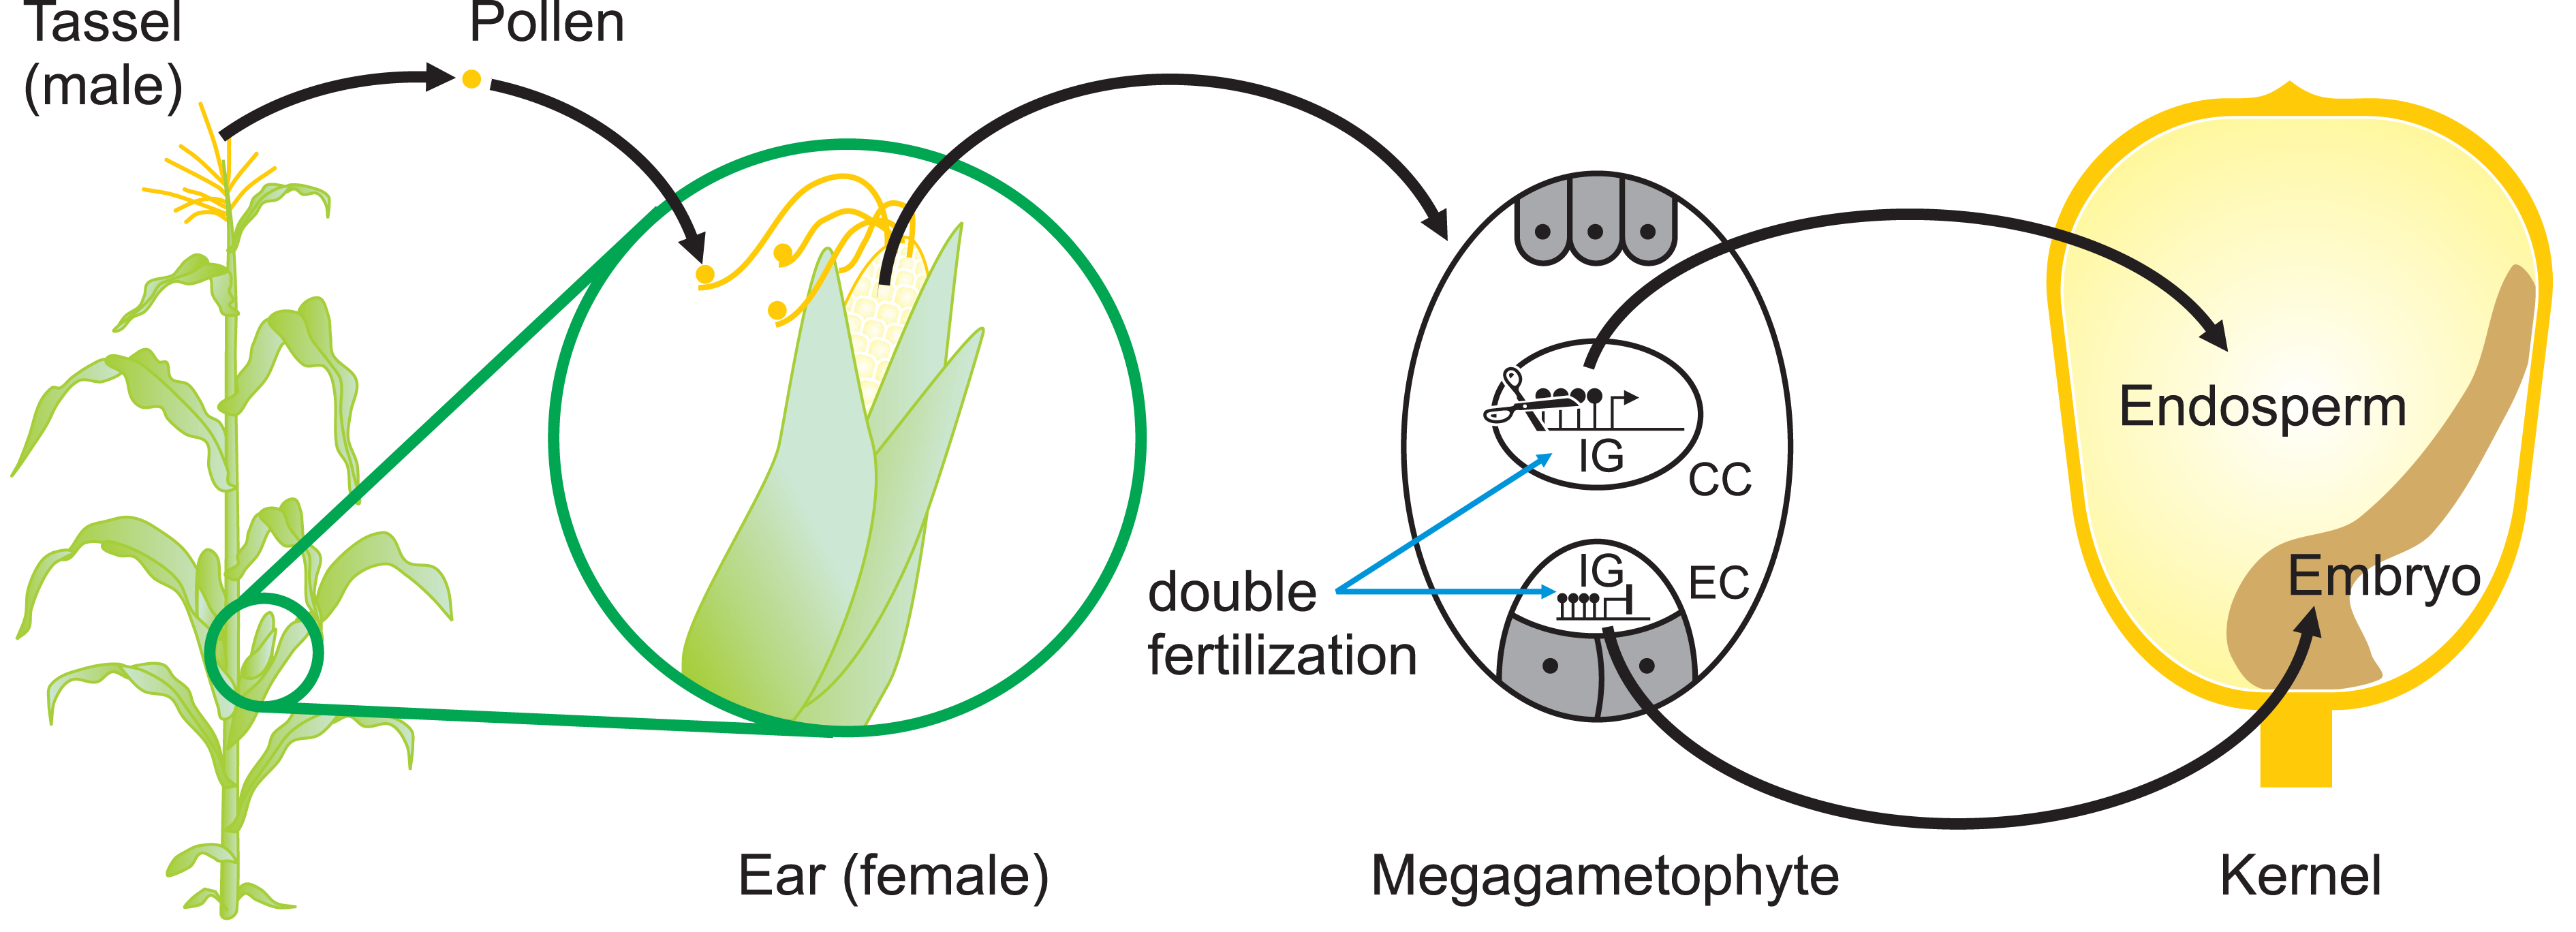 Sites of Potential Epigenetic Reprogramming during Maize Reproduction.